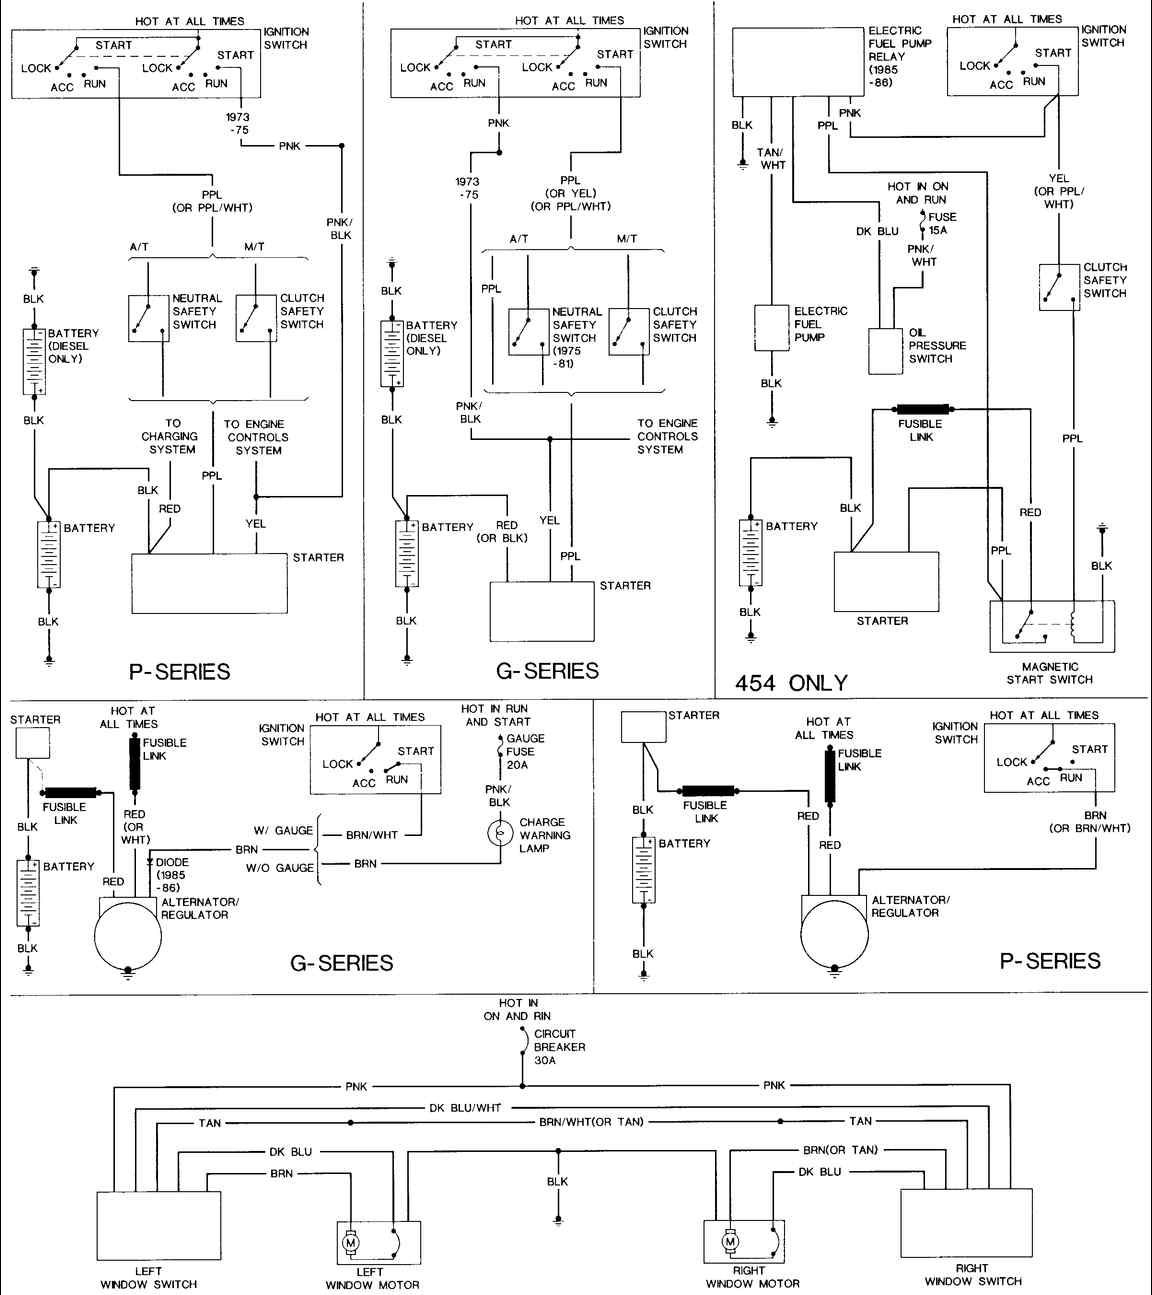 0c73623a181dc376dbb4777e2029d285 85 chevy truck wiring diagram 85 chevy van the steering column 1989 Chevy 1500 Wiring Diagram at mifinder.co